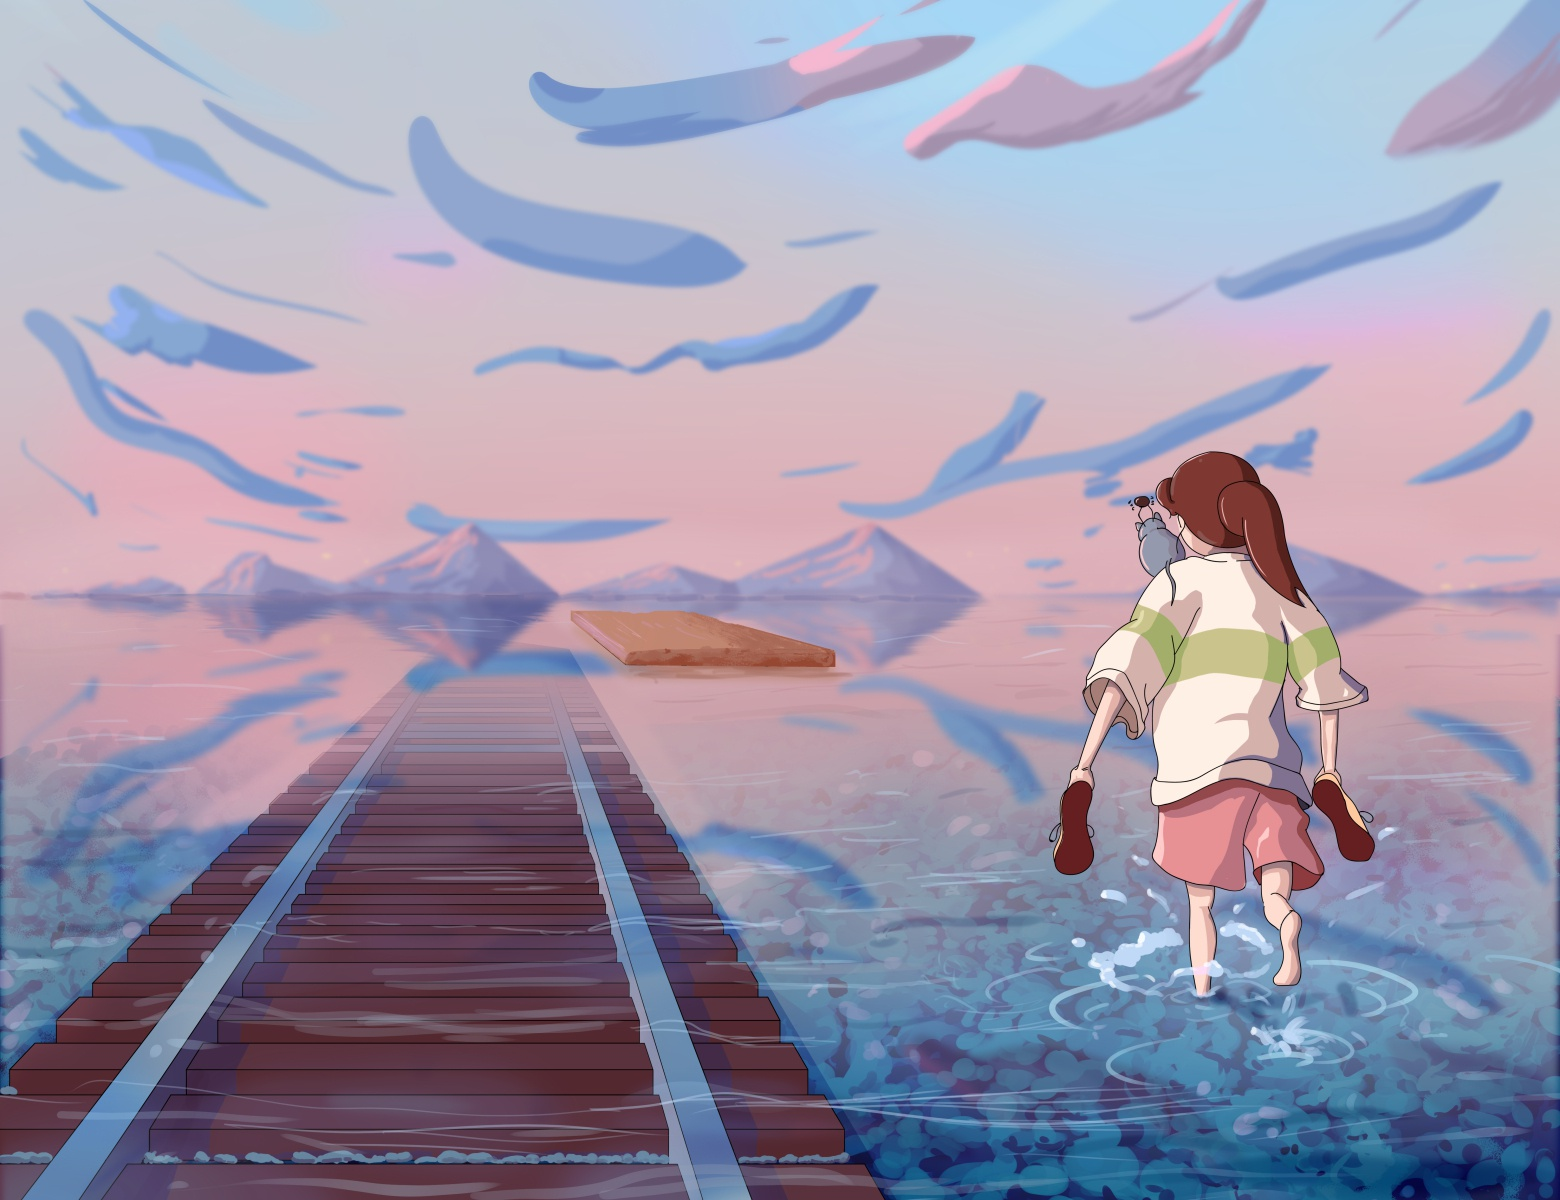 Chihiro From Spirited Away Fan Art By Dominique Raneses On Dribbble